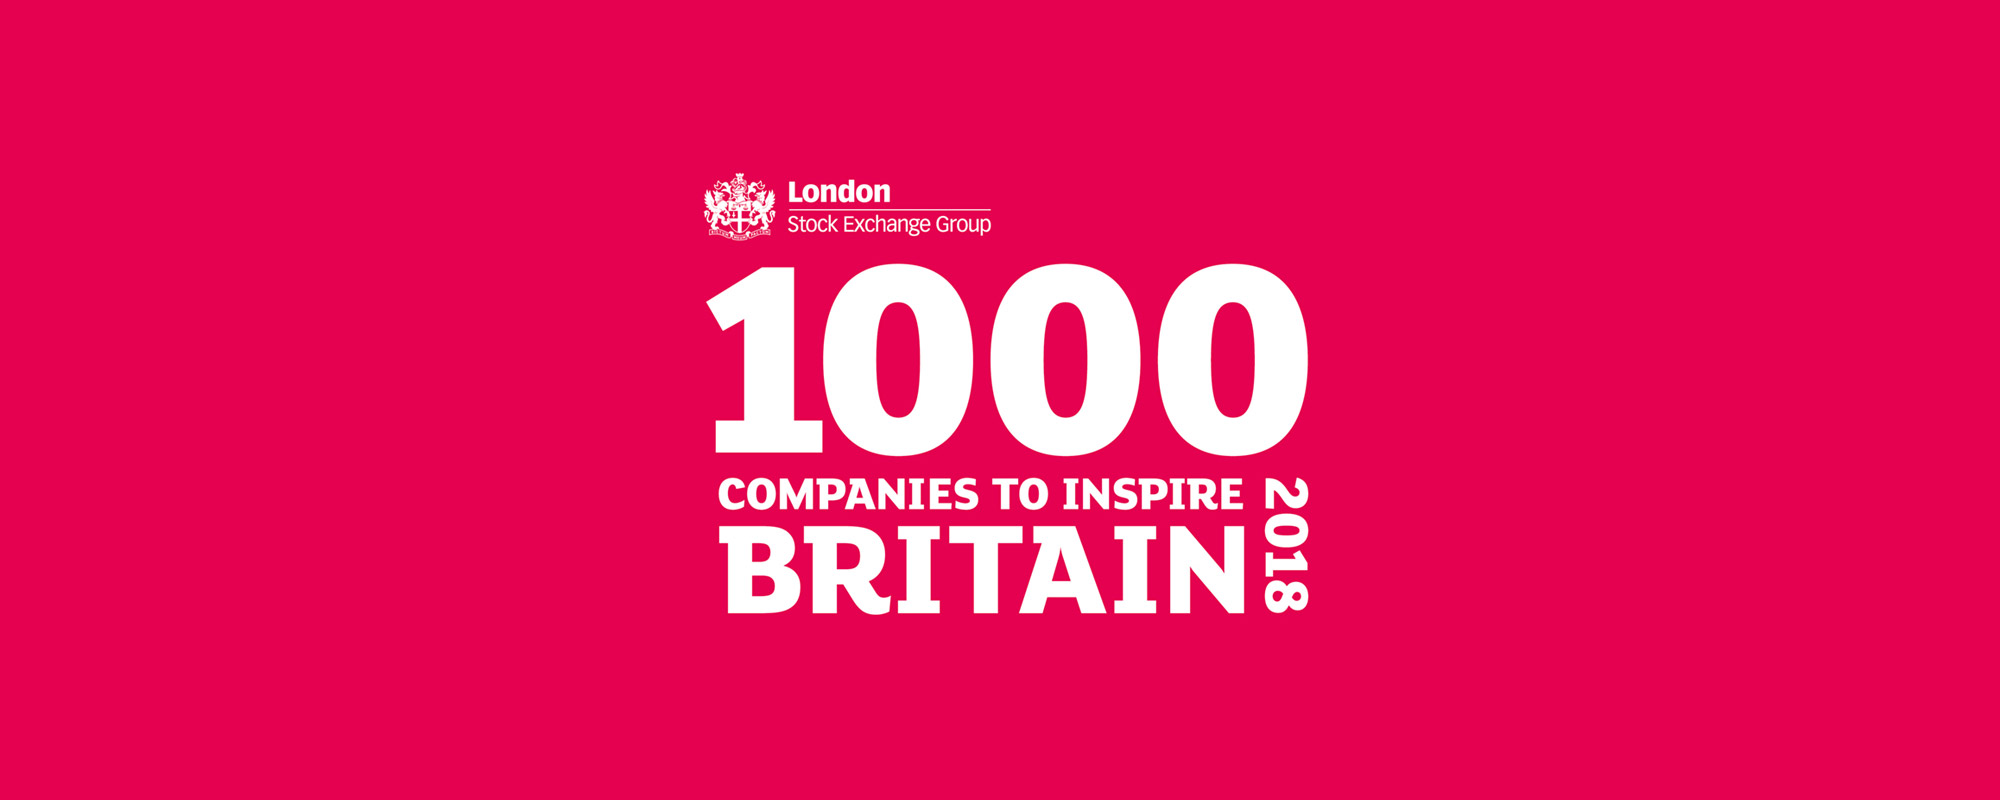 Bee Health named in London Stock Exchange Group's '1000 Companies to Inspire Britain' report